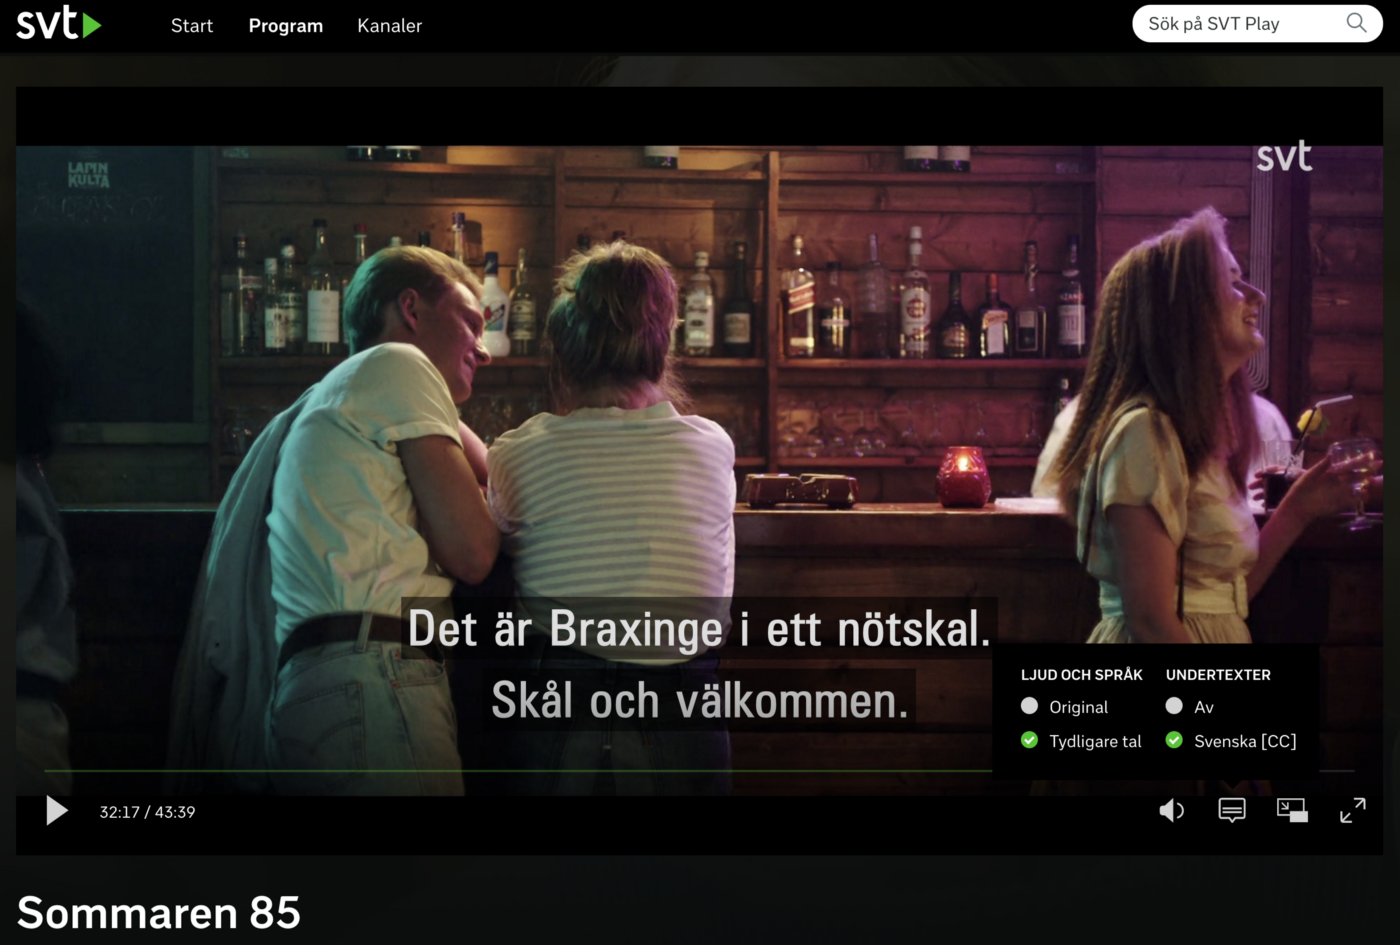 Videoplayer on svtplay.se with a tooltip showing the new function Tydligare tal (Clear Speech in English)